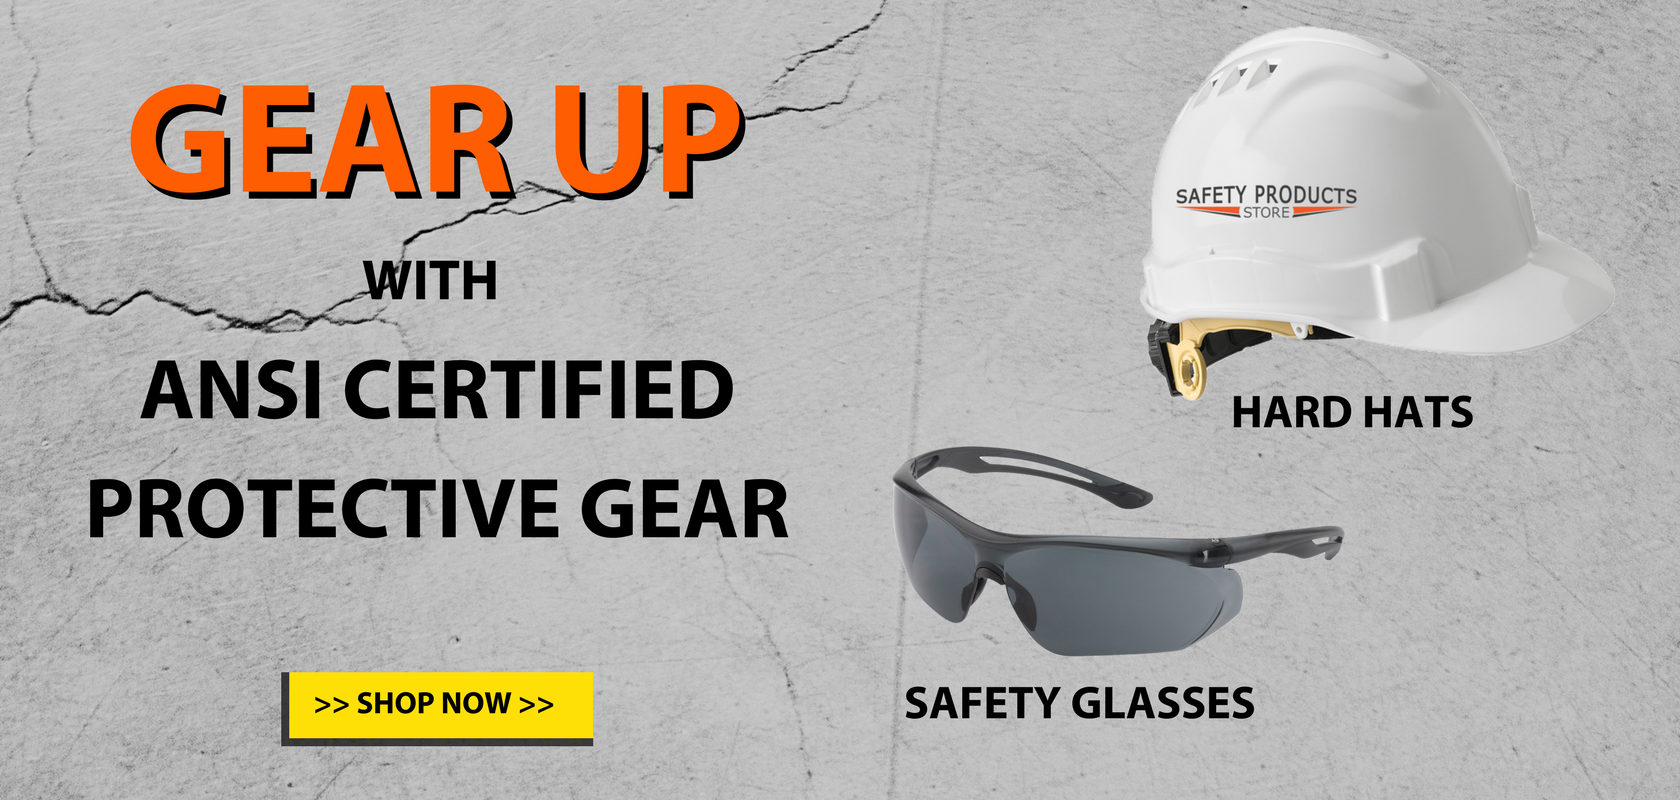 Gear Up on Safety Accessories